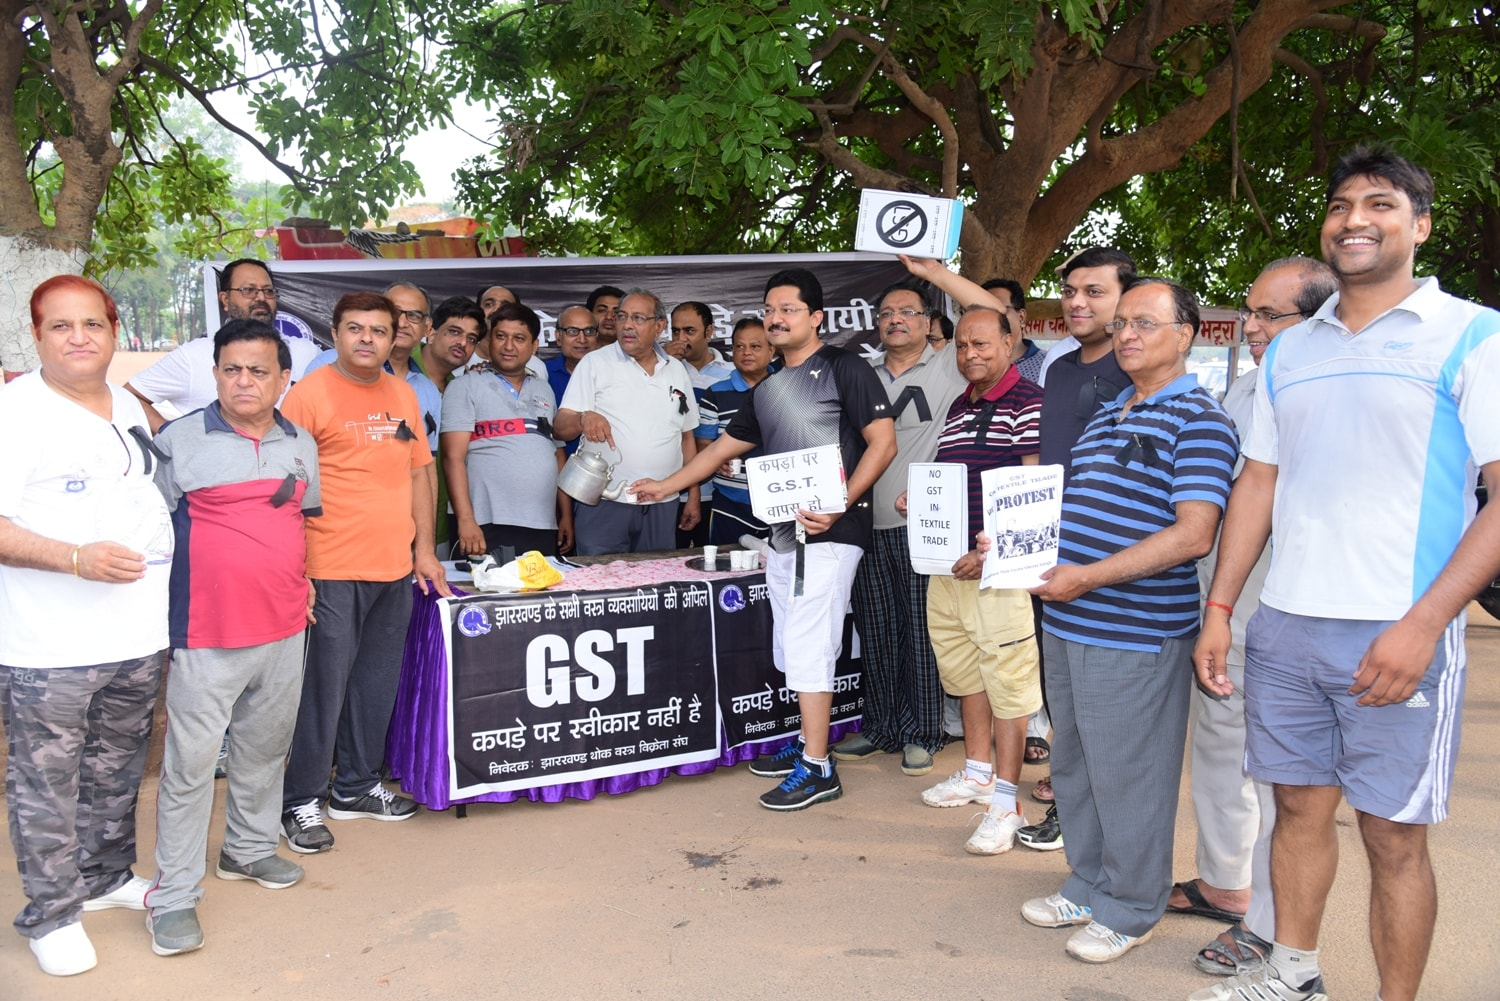 <p>Jharkhand Thok Vikreta Sangh members held 'Chai Par Charcha'(Discussion over a cup of tea) to mark their protest against GST slated to be enforced on July 1,2017.</p>